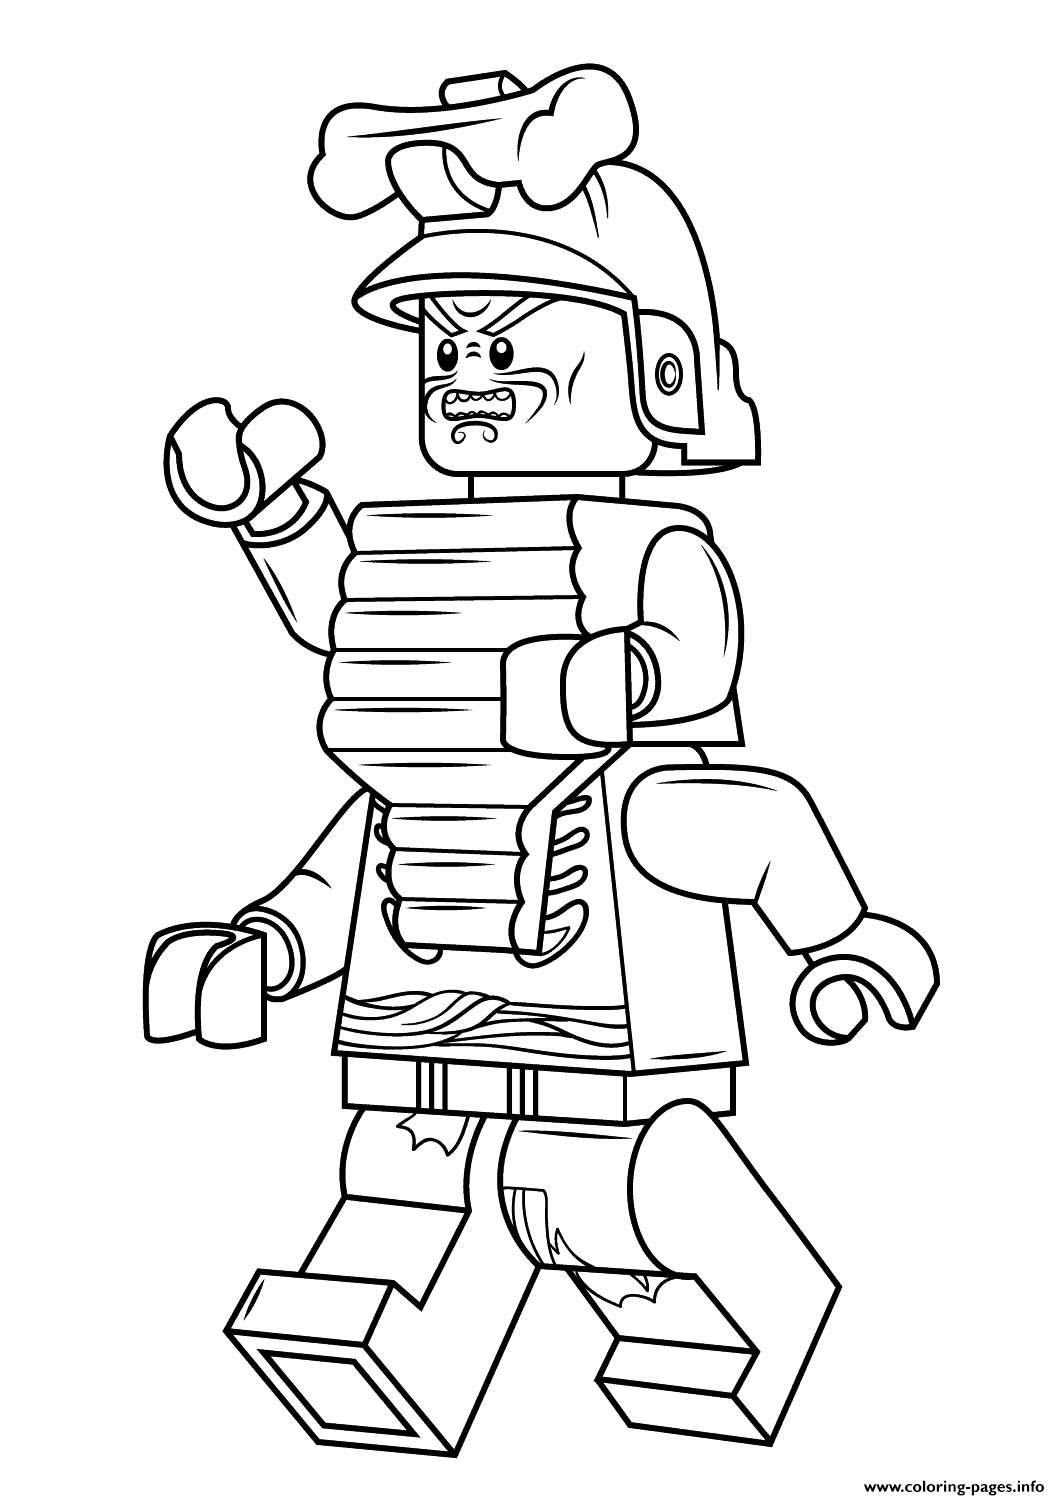 Print lego ninjago lord garmadon coloring pages | Christmas crochet ...